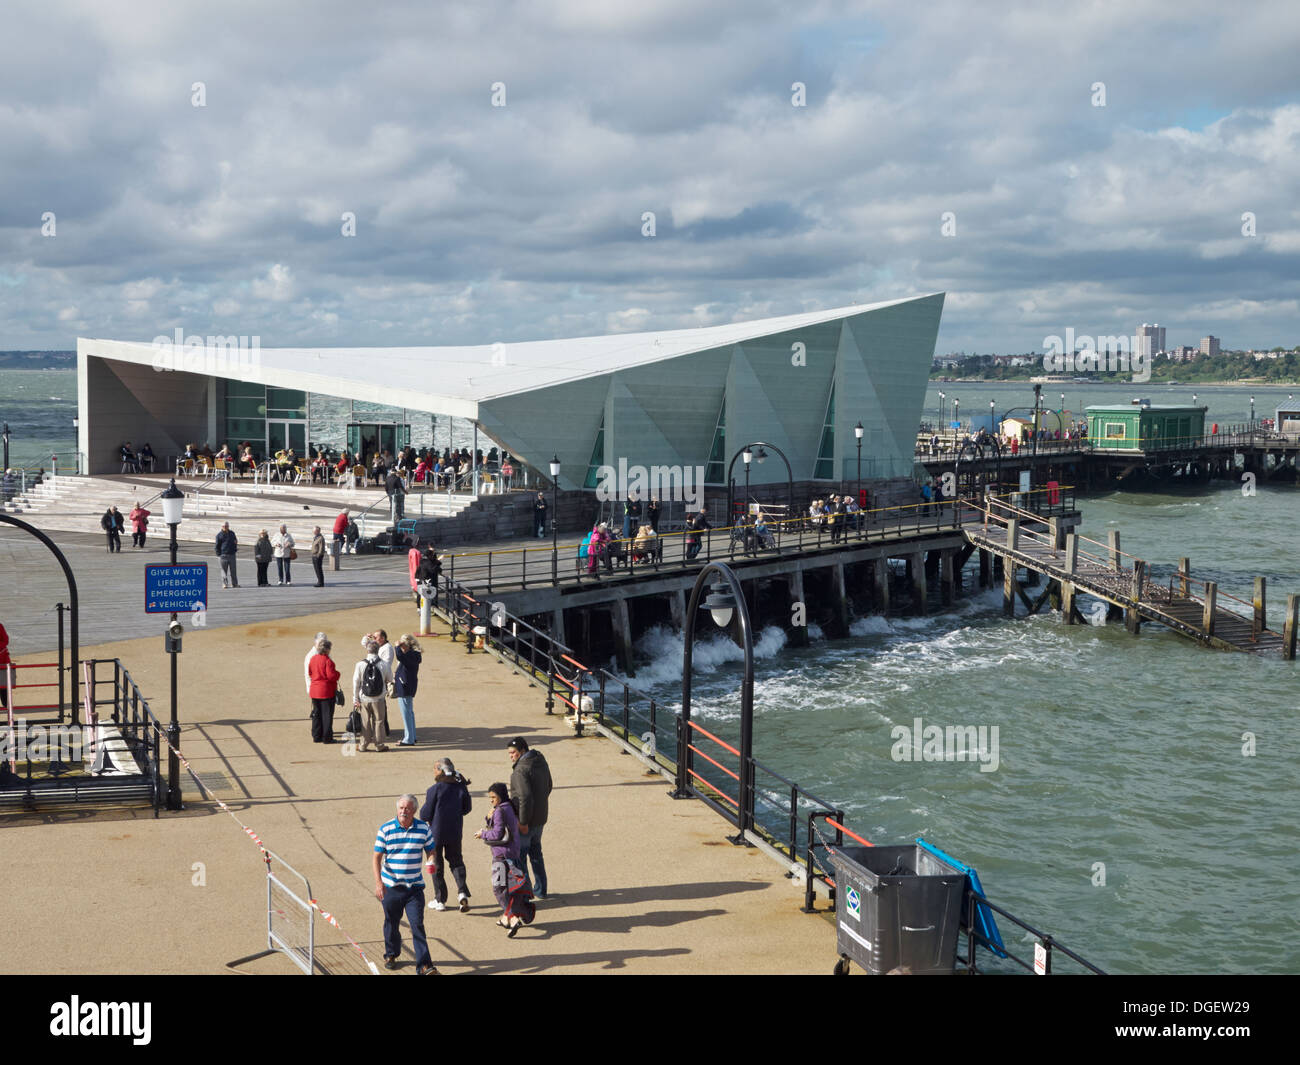 Snack bar restaurant at Southend Pier - Stock Image